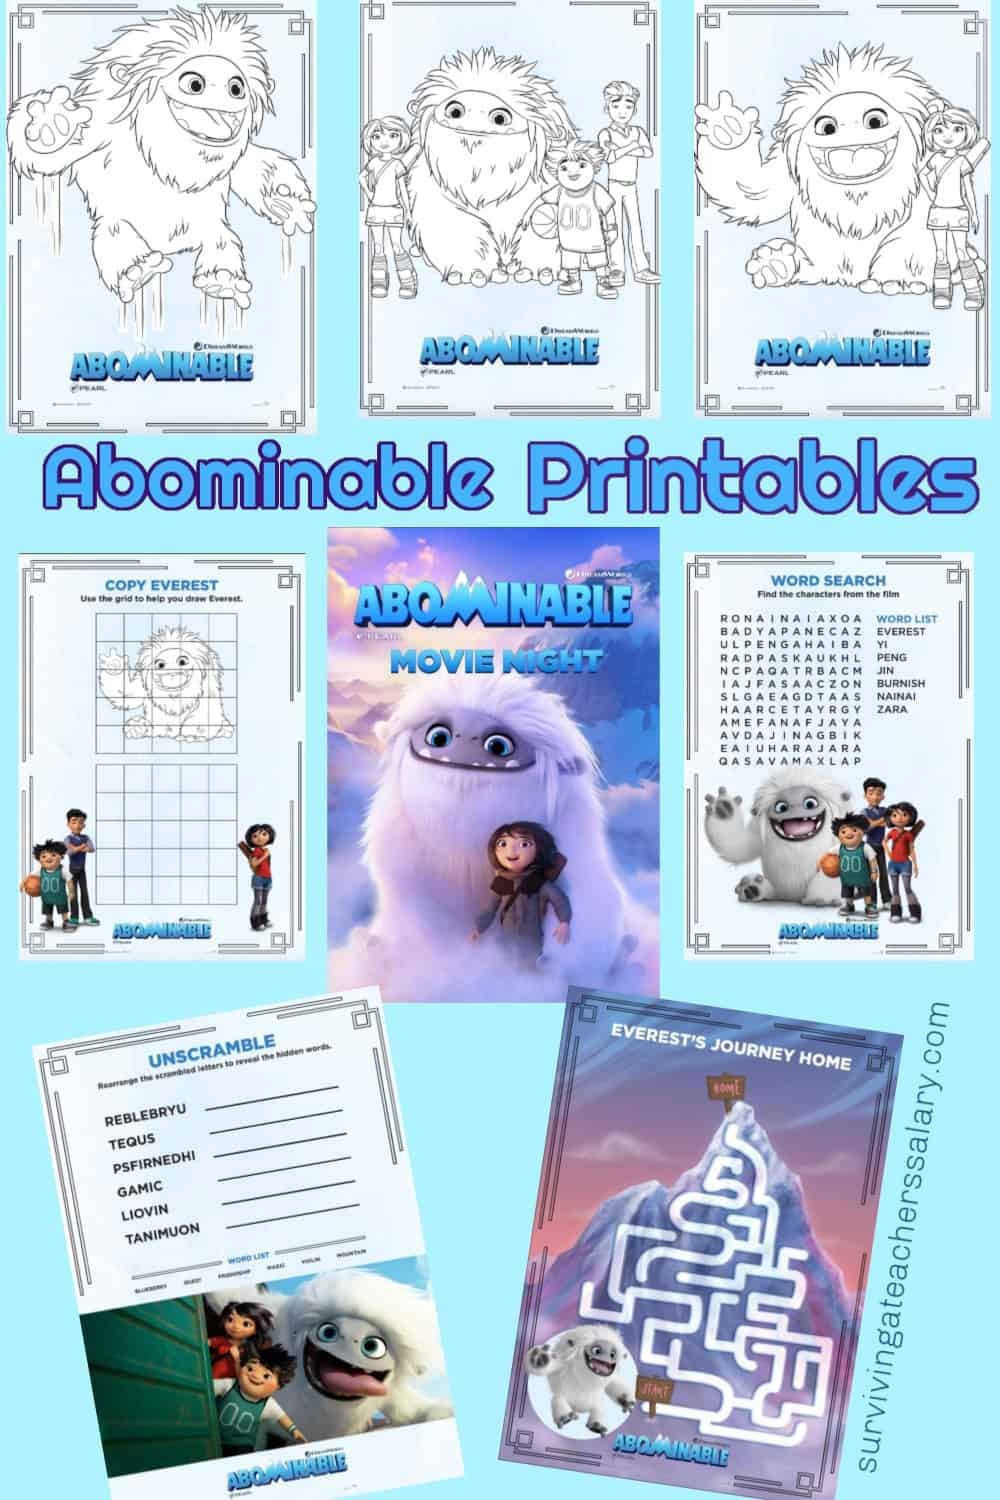 Free Abominable Printable Coloring Pages, Games & Recipes